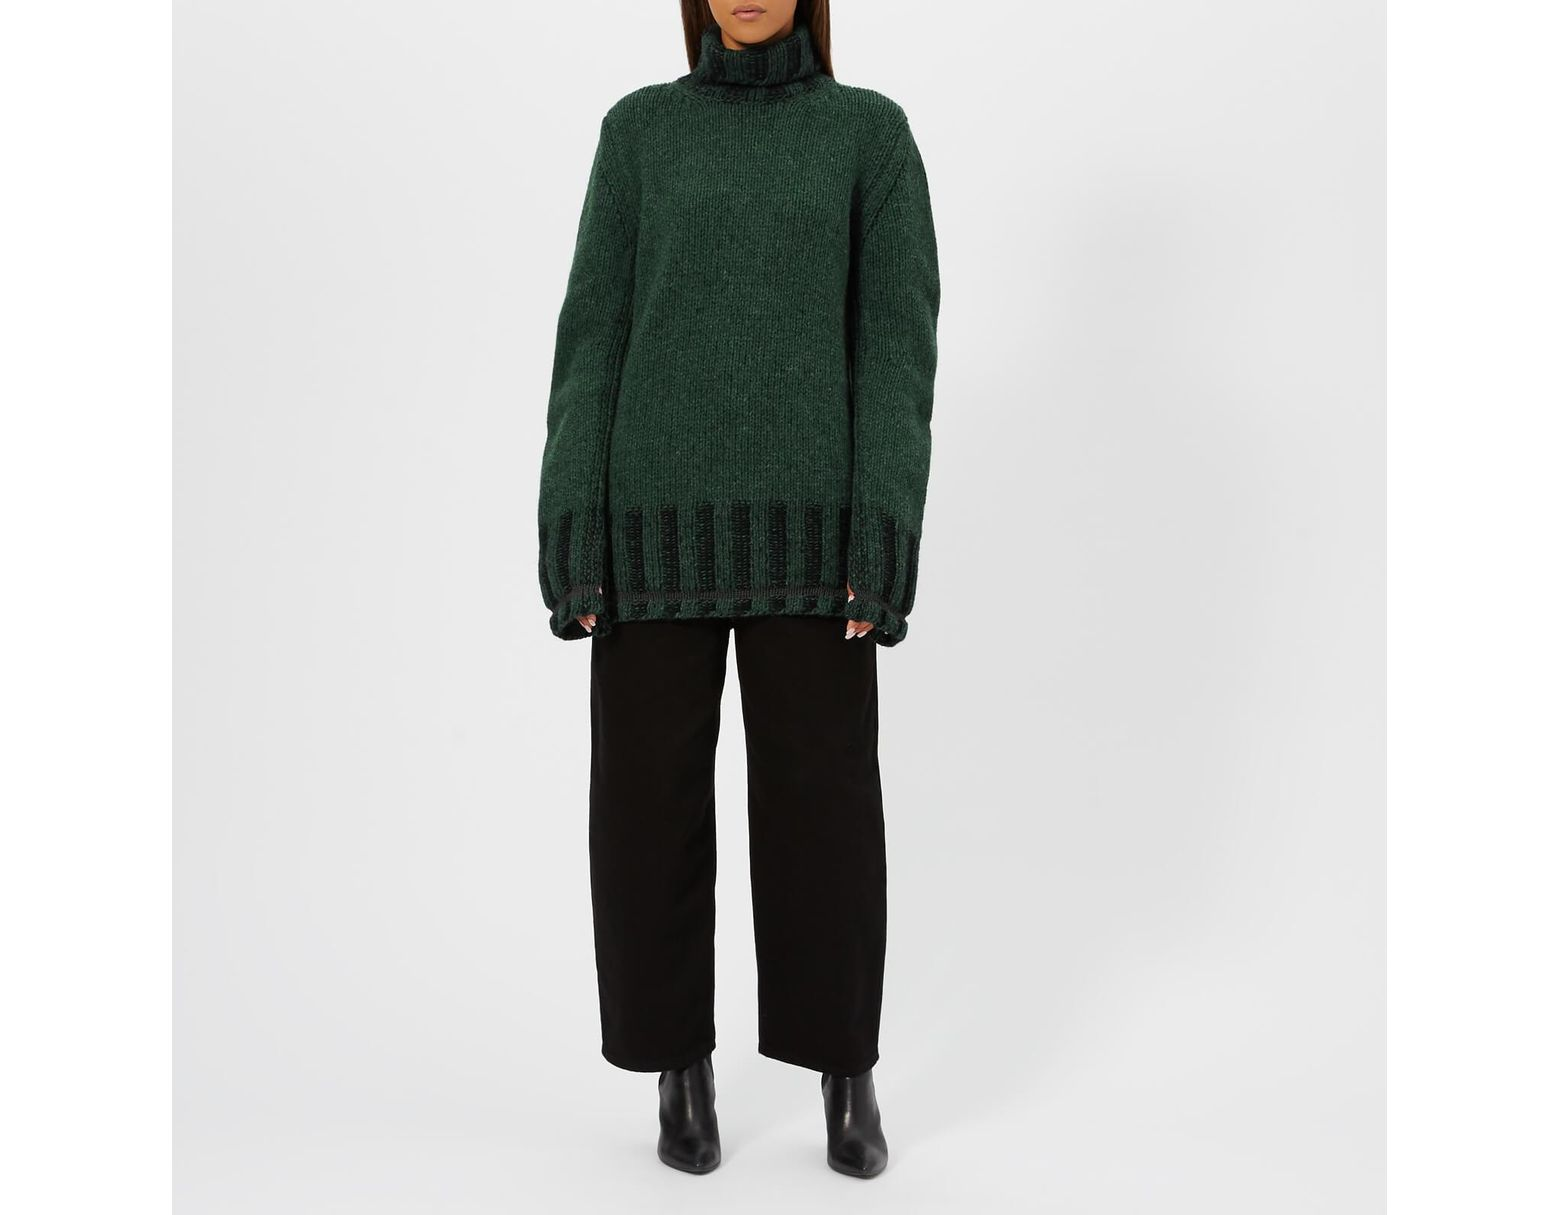 f6bff6e4f2348a MM6 by Maison Martin Margiela Polo Neck Knitted Jumper in Green - Lyst